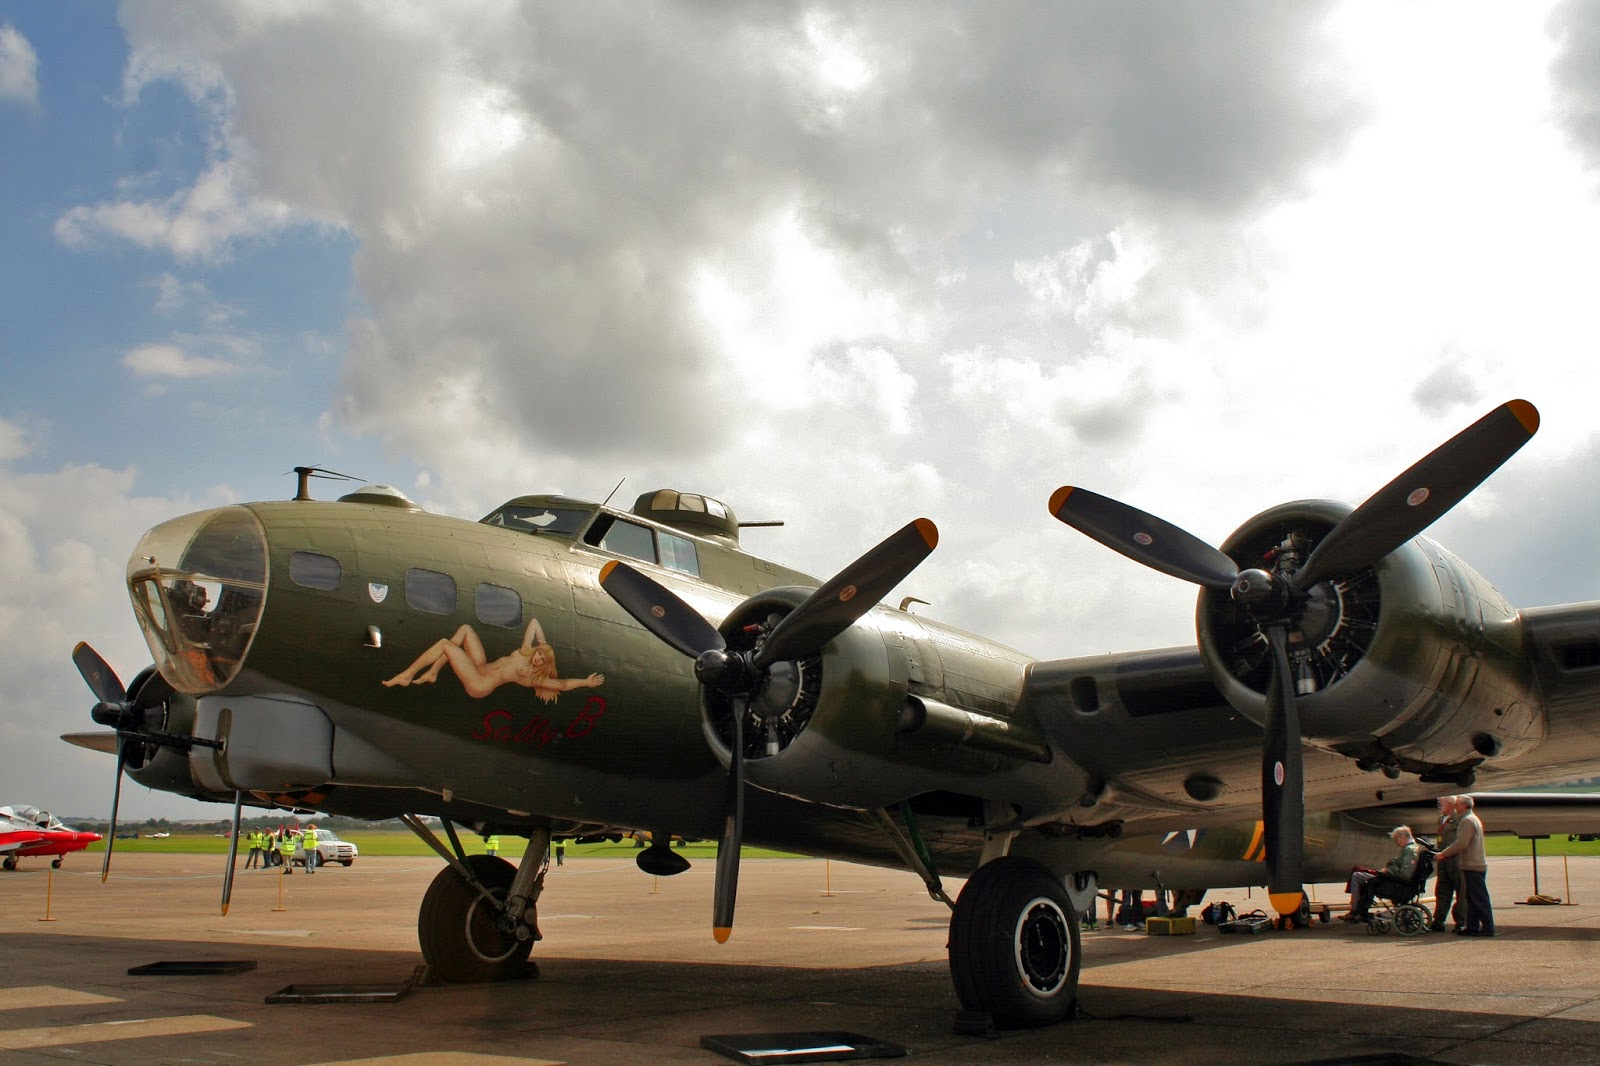 Duxford Airshow September 14th 2014 - B17 Flying Fortress 'Sally Bee""